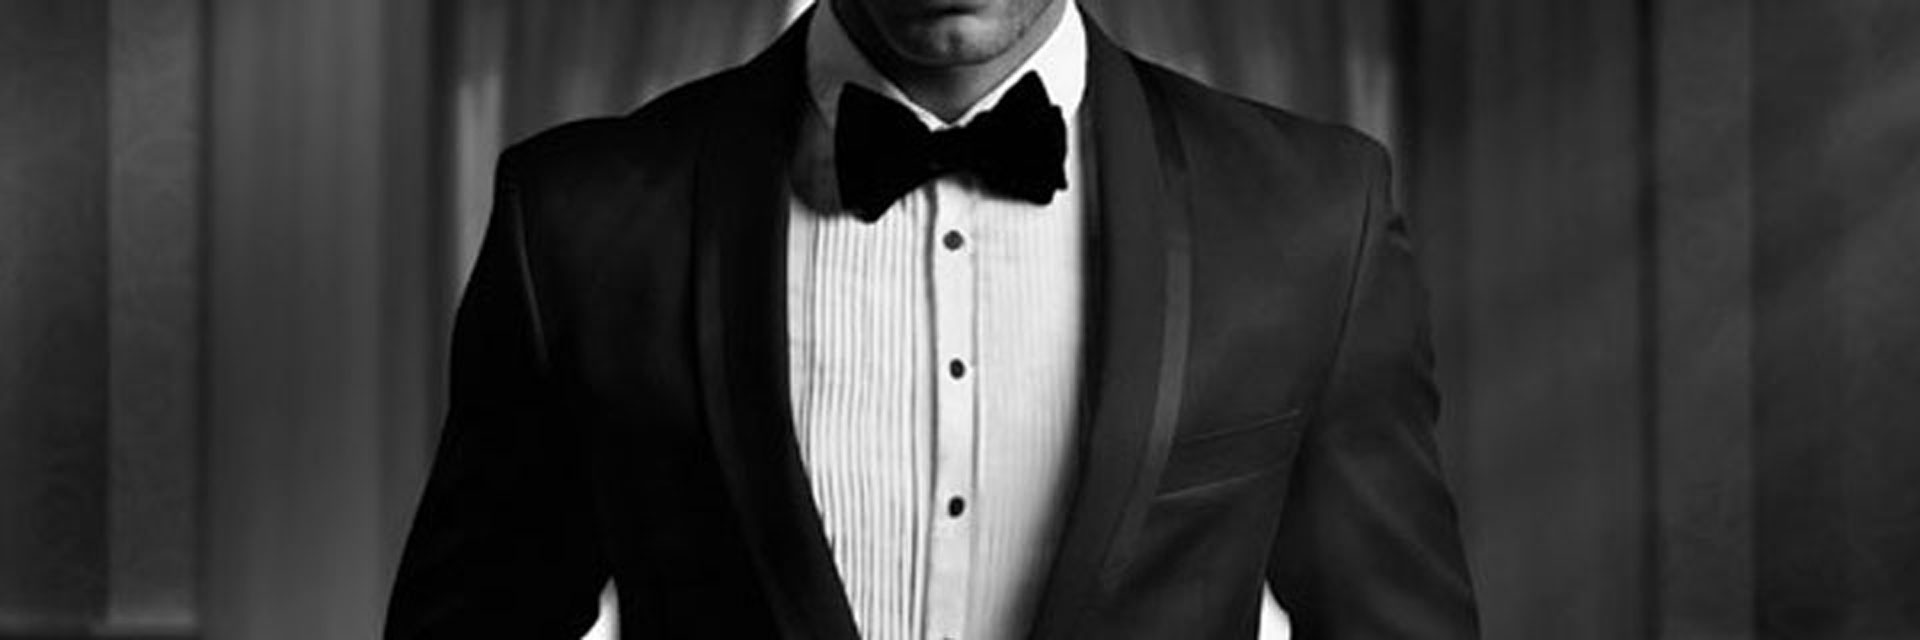 Archer - black and white image of a man in a tuxedo